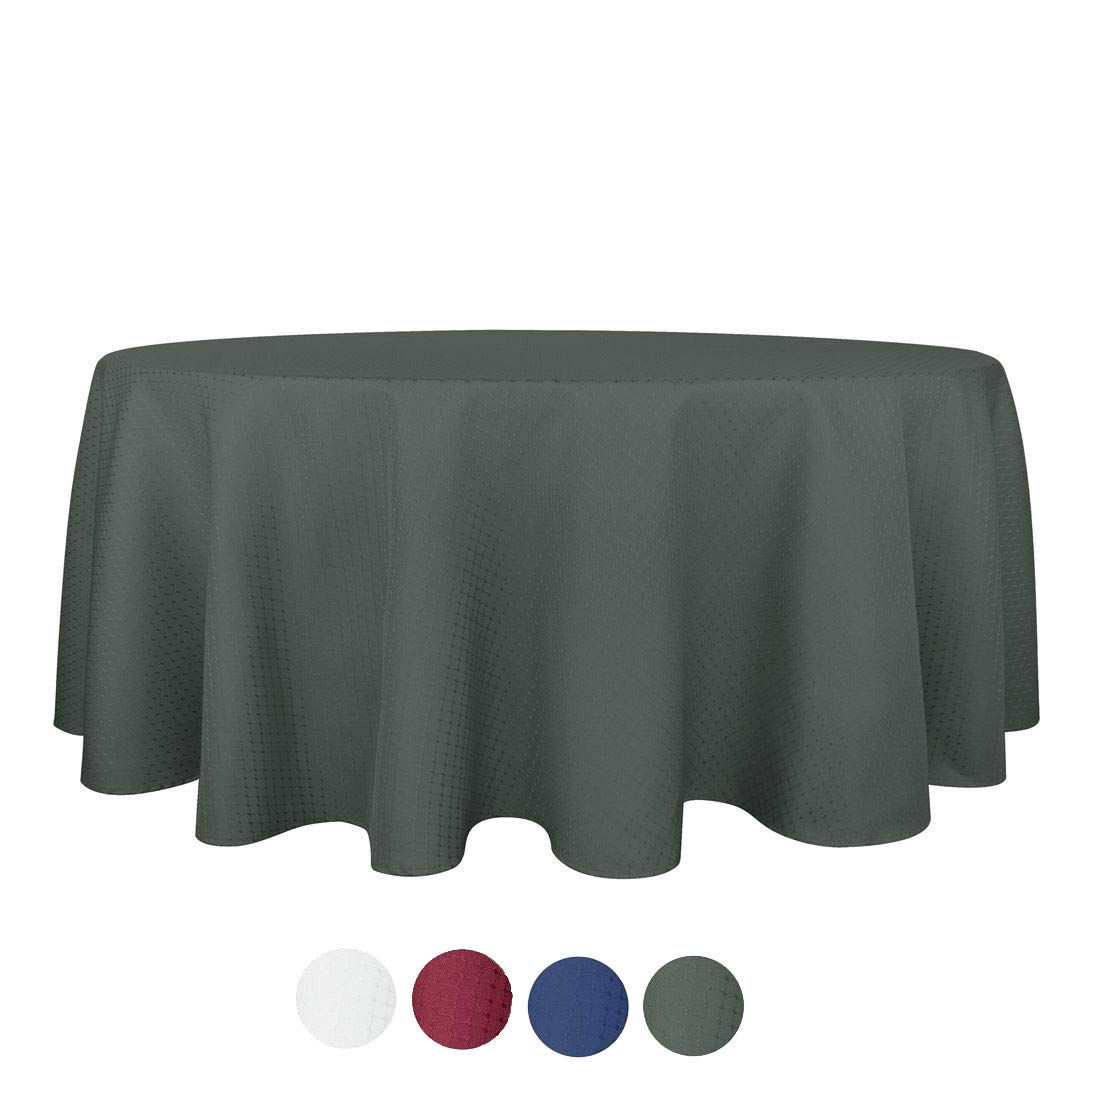 Anti-Water Mildew Free 100/% Polyester Table Cover Indoor for Home//Hotel Restaurant Round 70-inch for 6 Seats eforgift Dark Charcoal Waffle Weave Design Cloth Tablecloths Spill and Stain-Proof